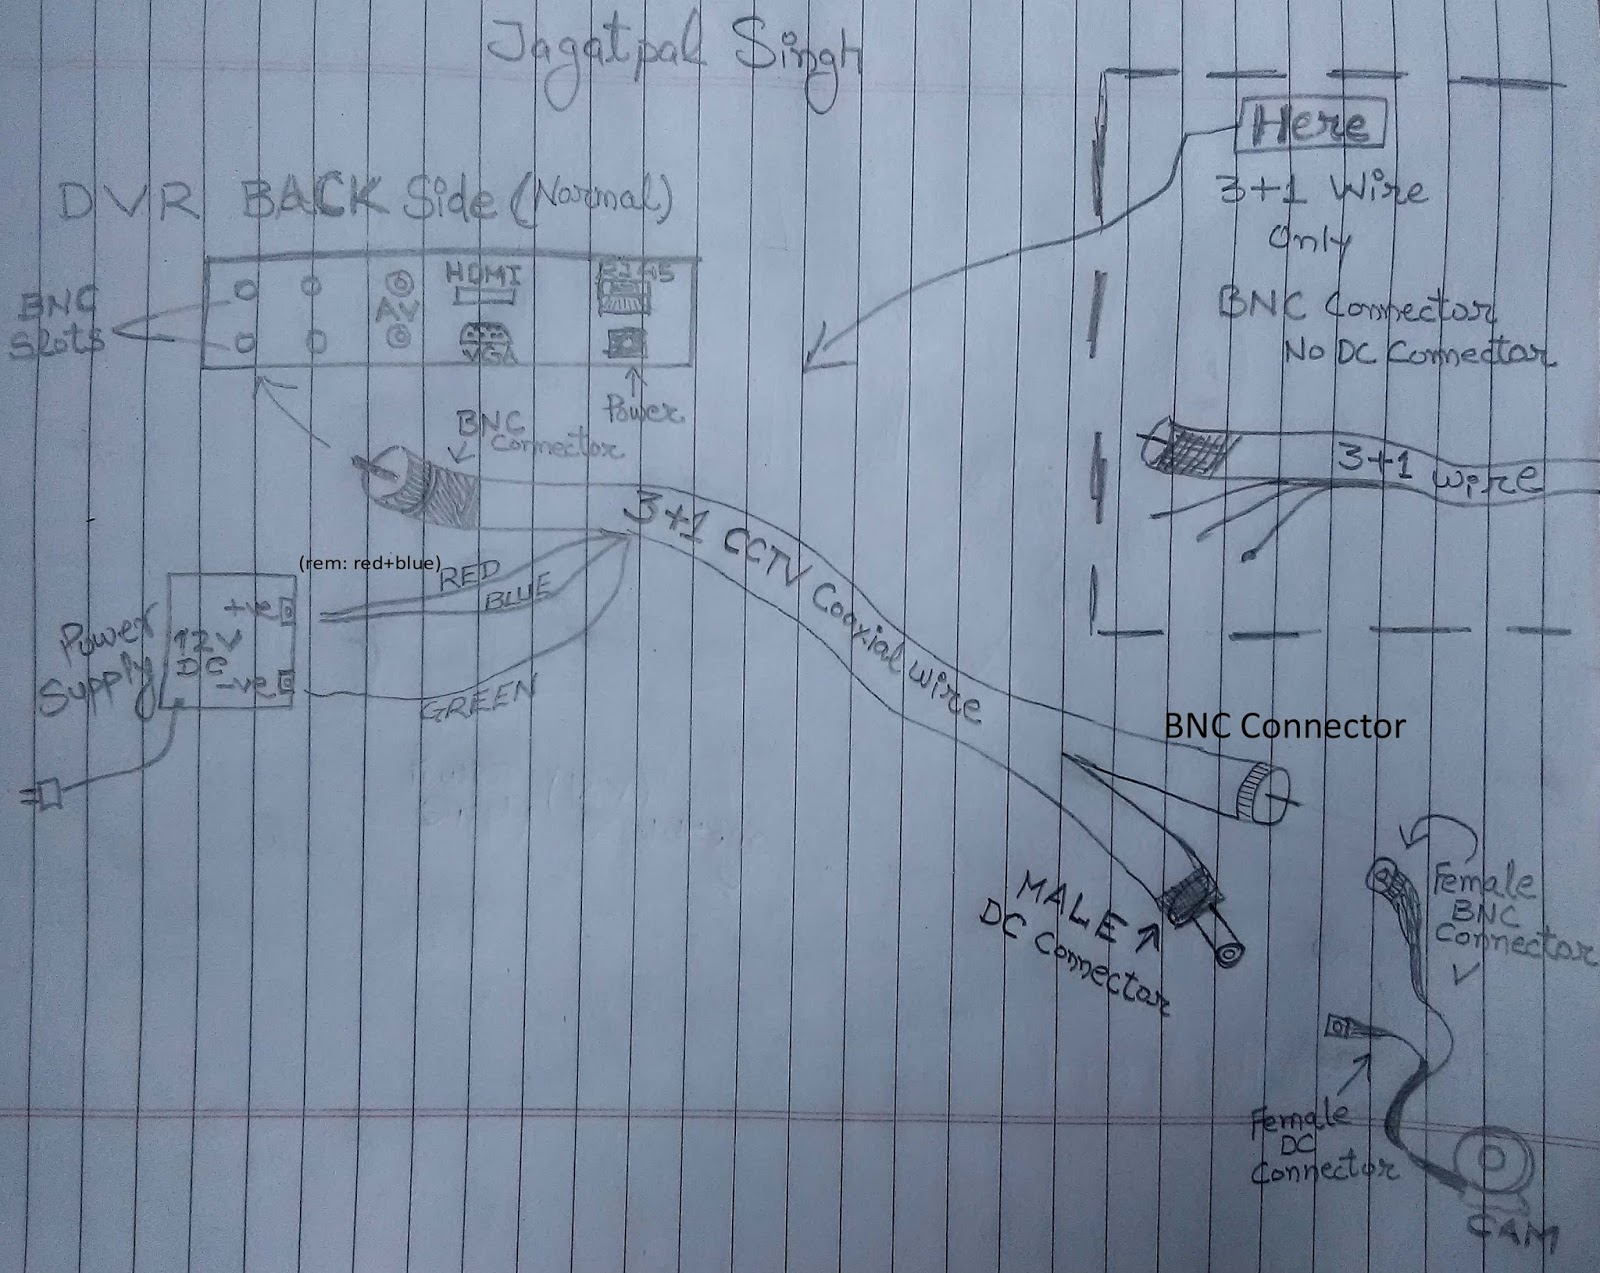 How To Install Cctv Camera Beginner Bnc Connector Wiring Diagram A 3 1 Cable Now Has Two End At One It Dc And On Another Only With Free Wires Without Themthese